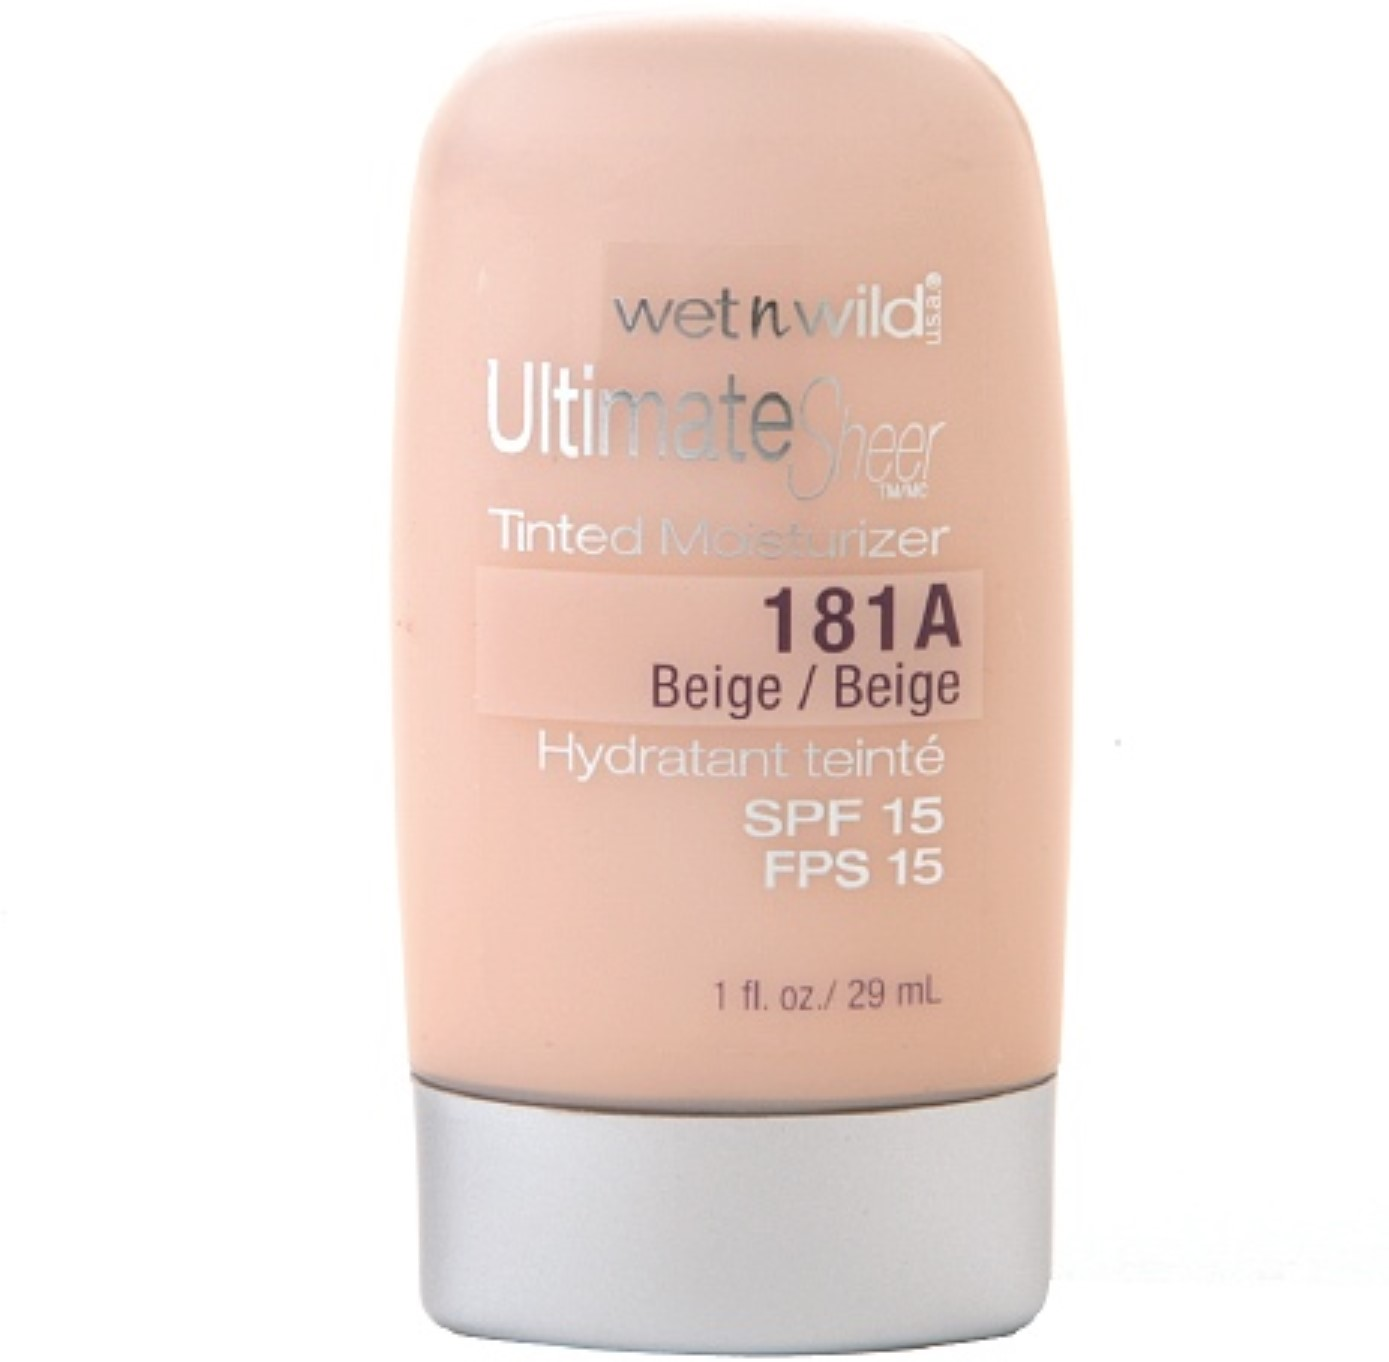 Wet n Wild Ultimate Sheer Tinted Moisturizer, SPF 15, 181A Beige